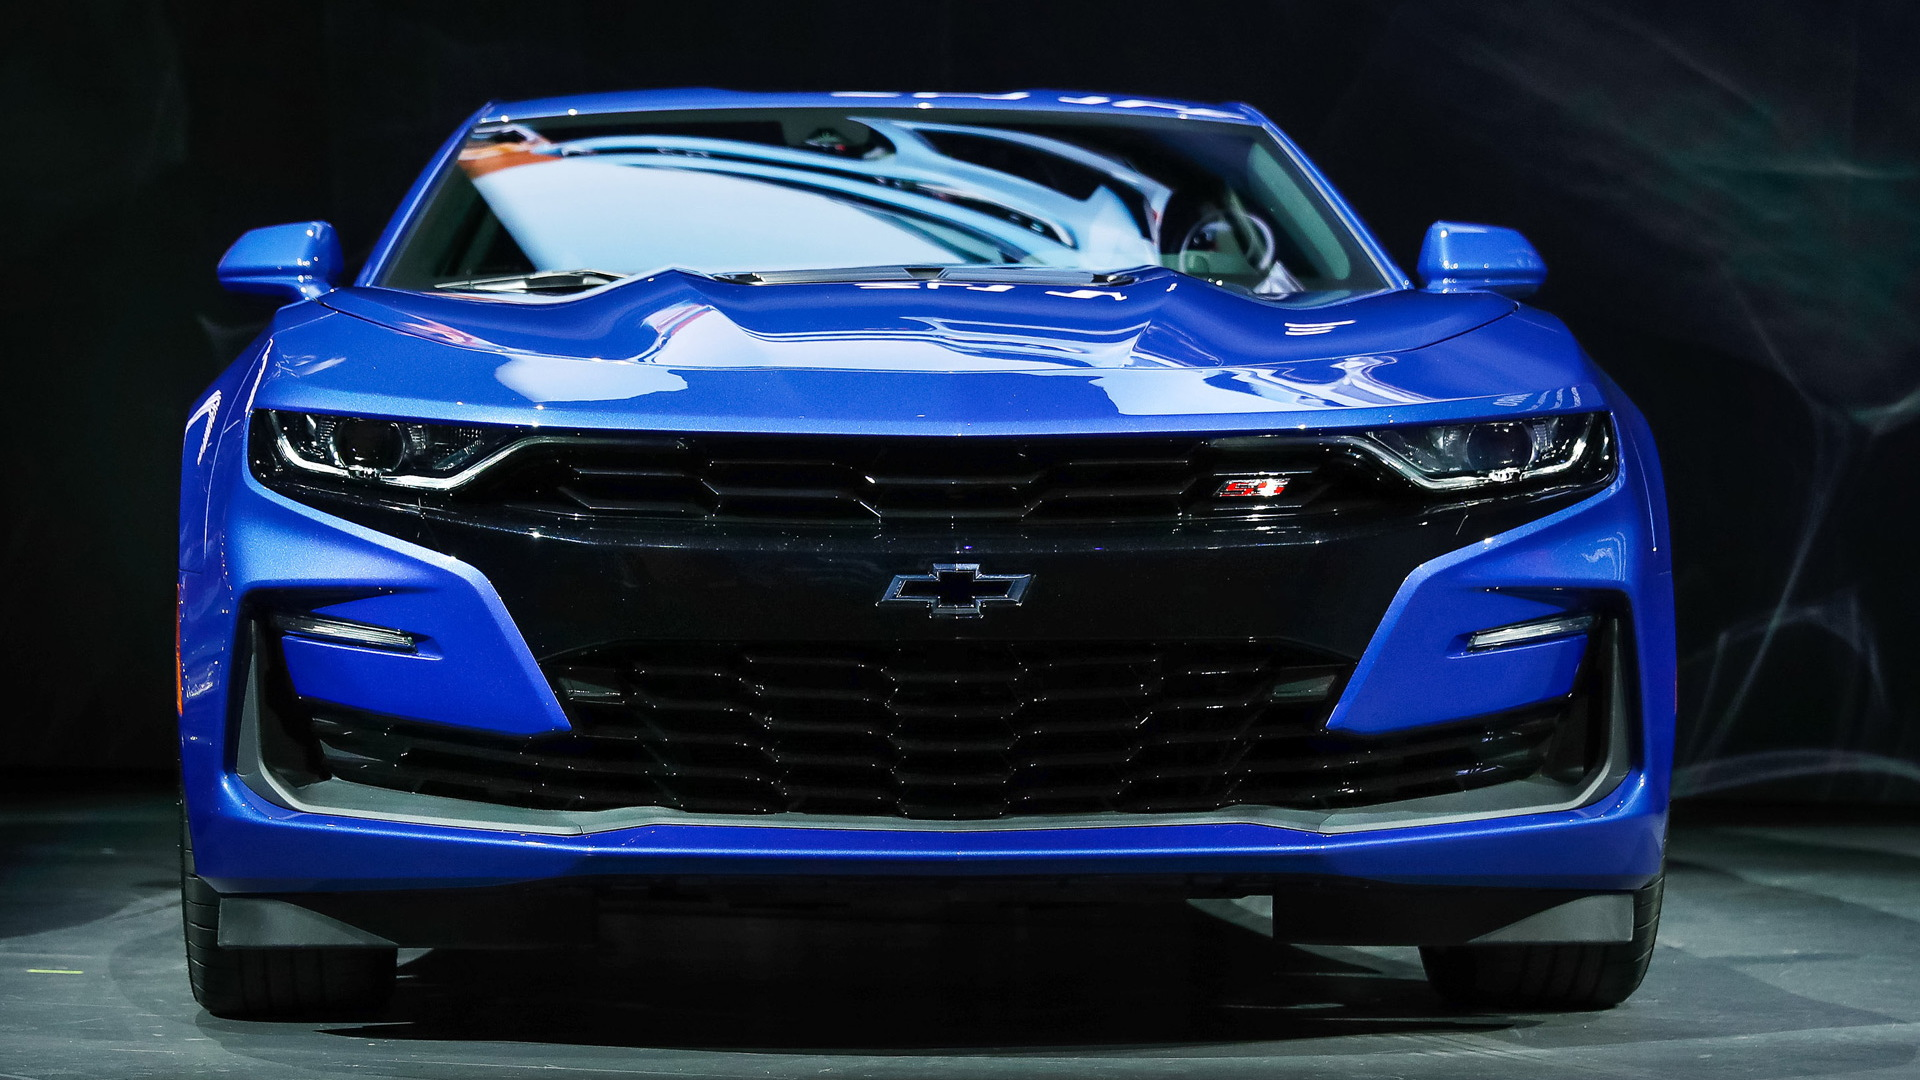 2019 Chevrolet Camaro preview